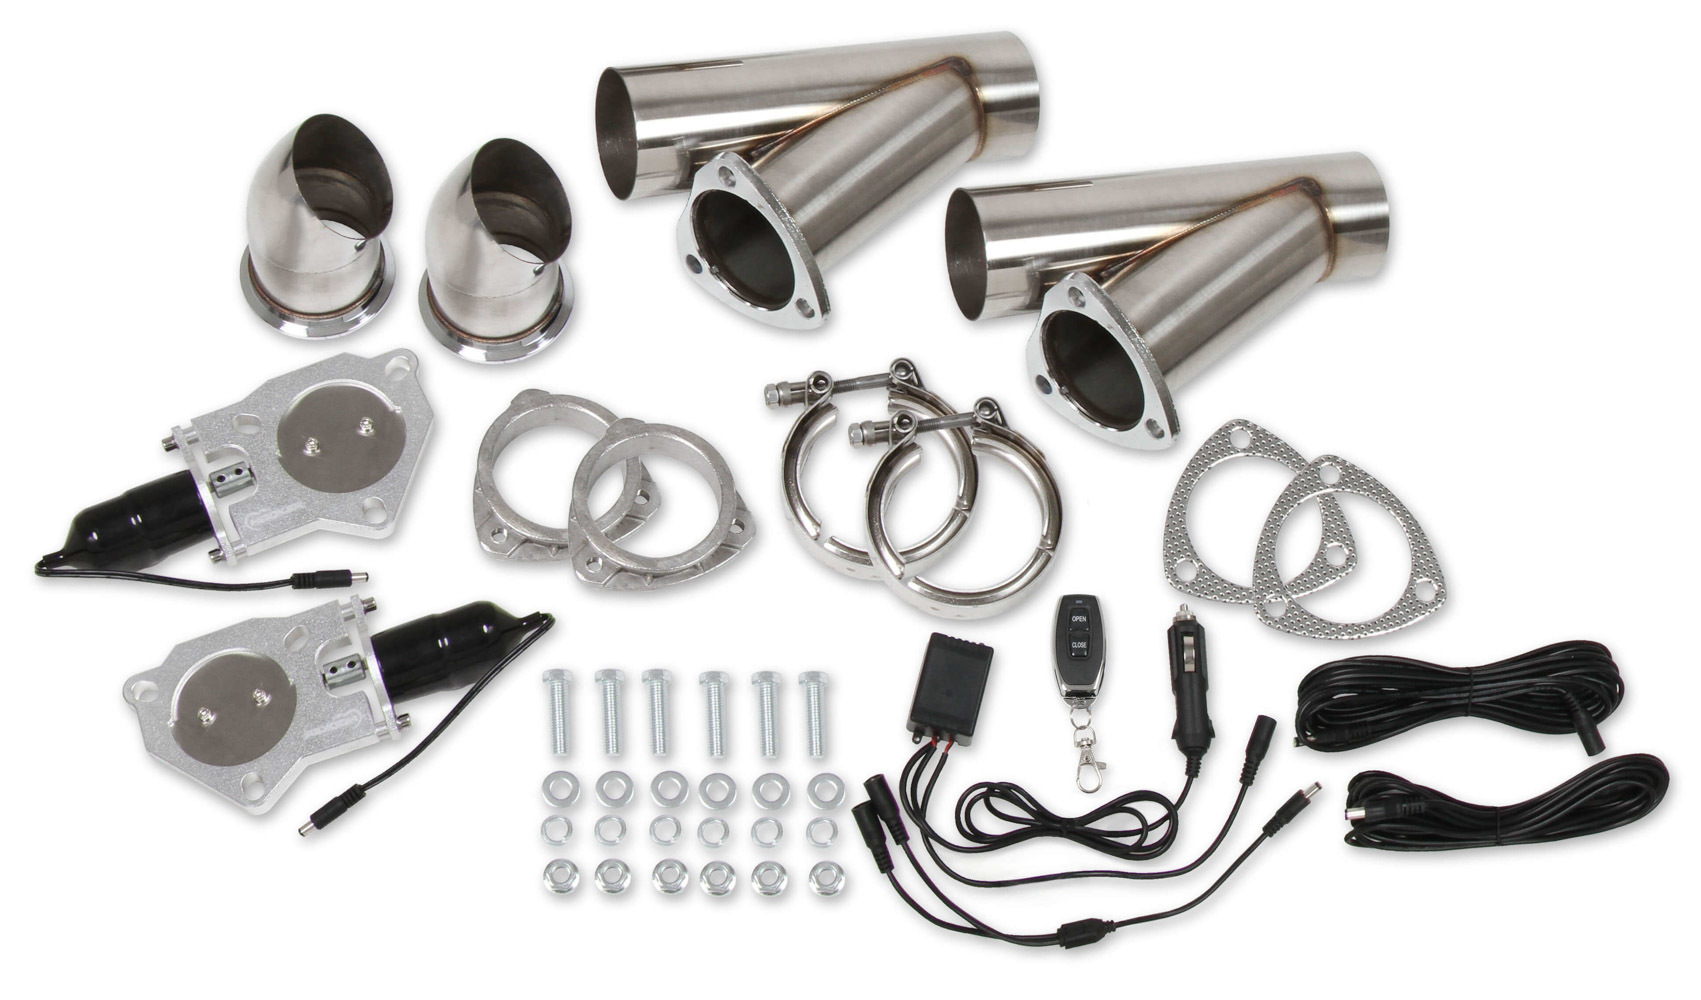 Hooker 11052 Exhaust Cut-Out, Electric, Bolt-On, Dual, 3 in Pipe Diameter, Hardware / Wire Harness Included, Aluminum, Kit